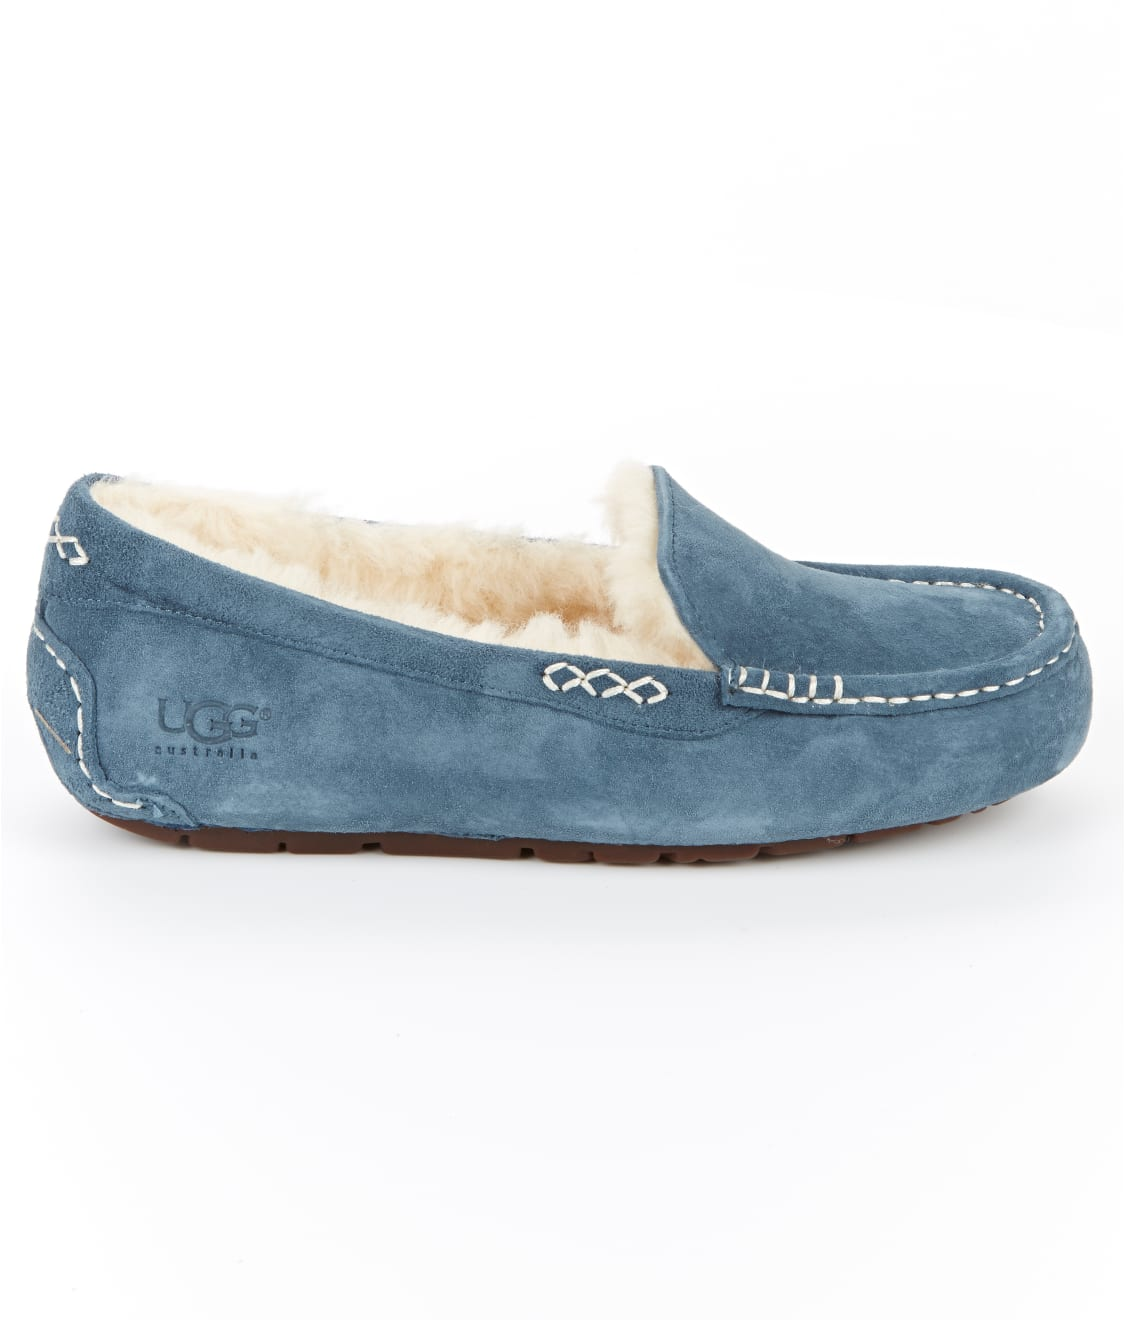 See Ansley Slippers in Dolphin Blue